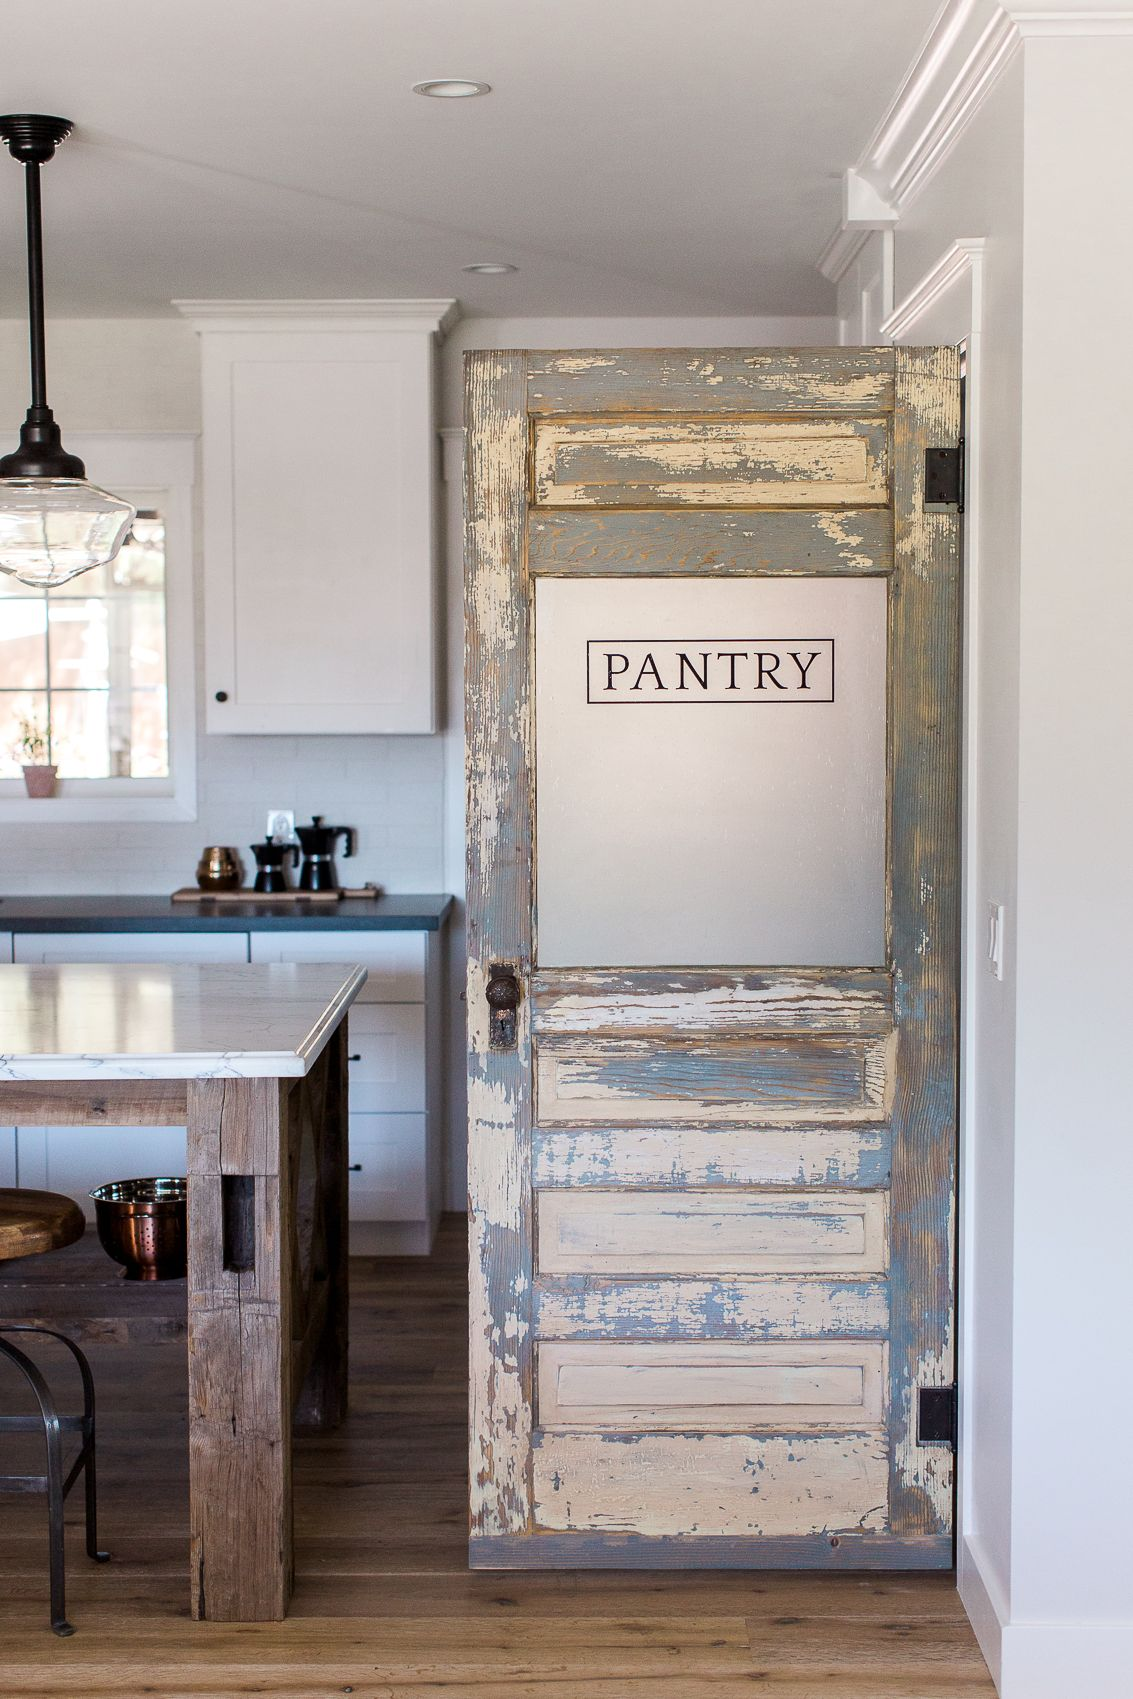 Superieur Custom Rafterhouse Pantry Door. This Door Was An Old Antique Door That We  Rebuilt And Re Purposed As A Pantry Door.